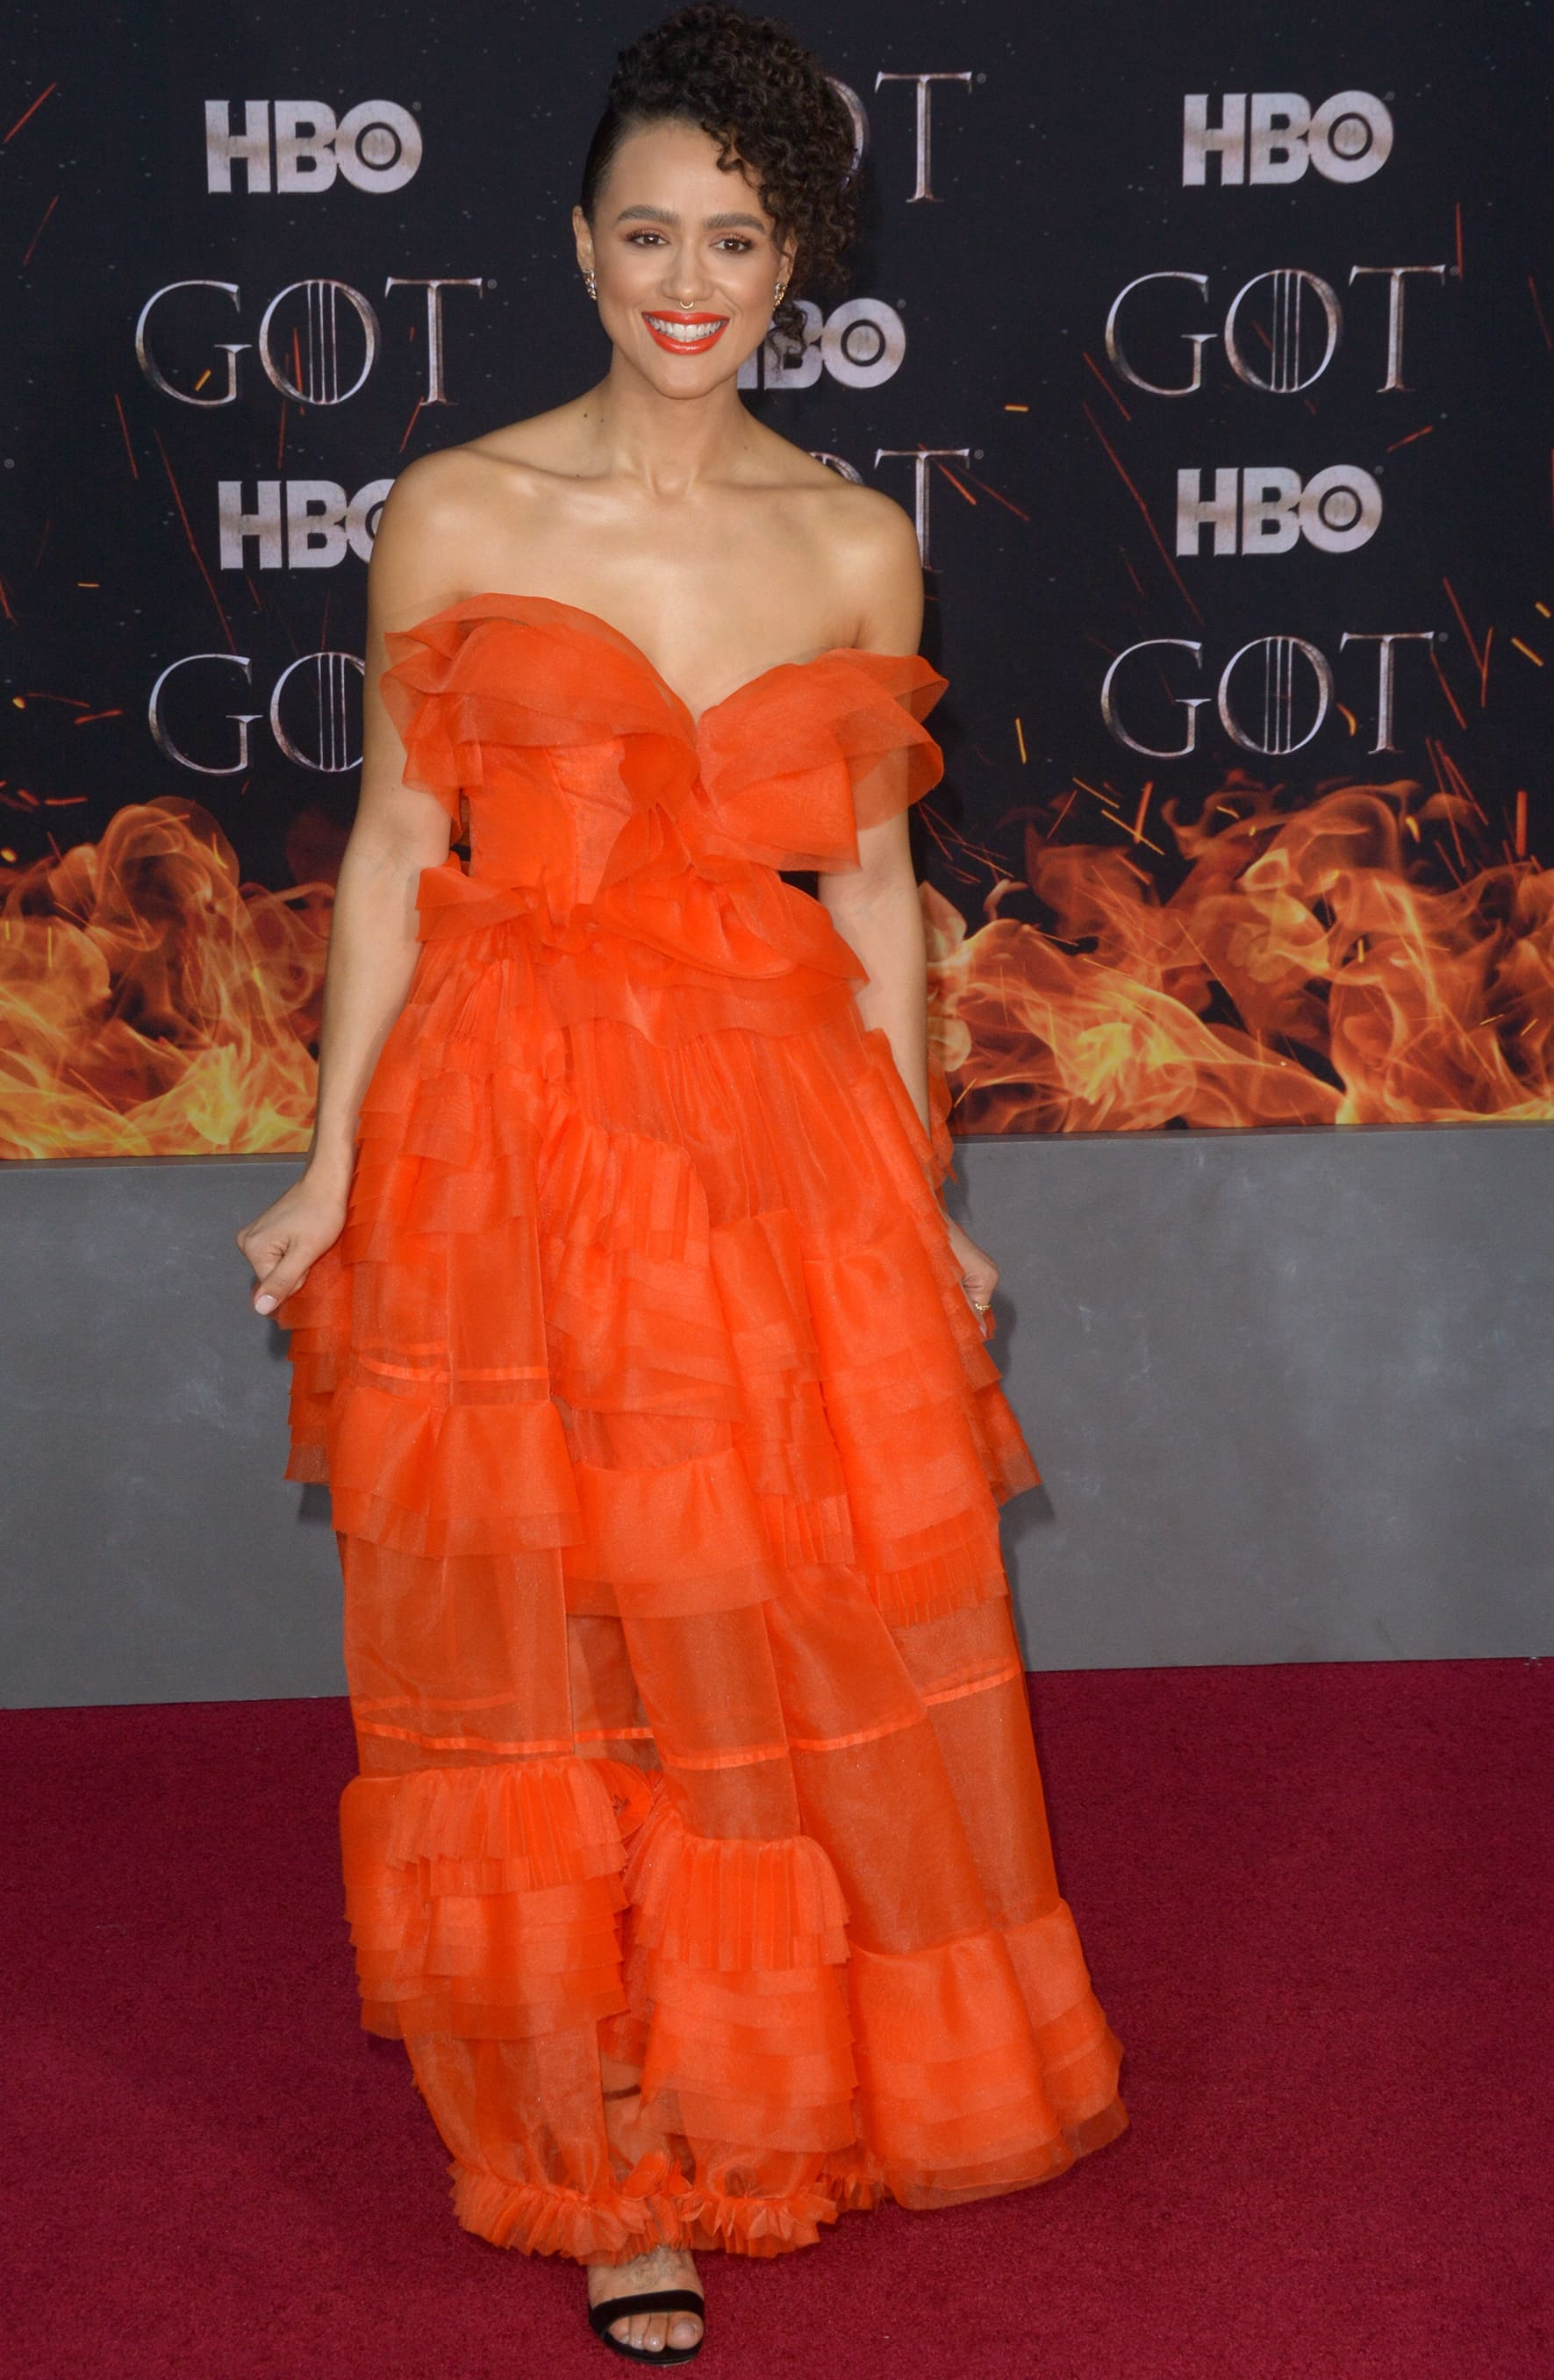 Nathalie Emmanuel on the red carpet at the Game of Thrones Season 8 premiere